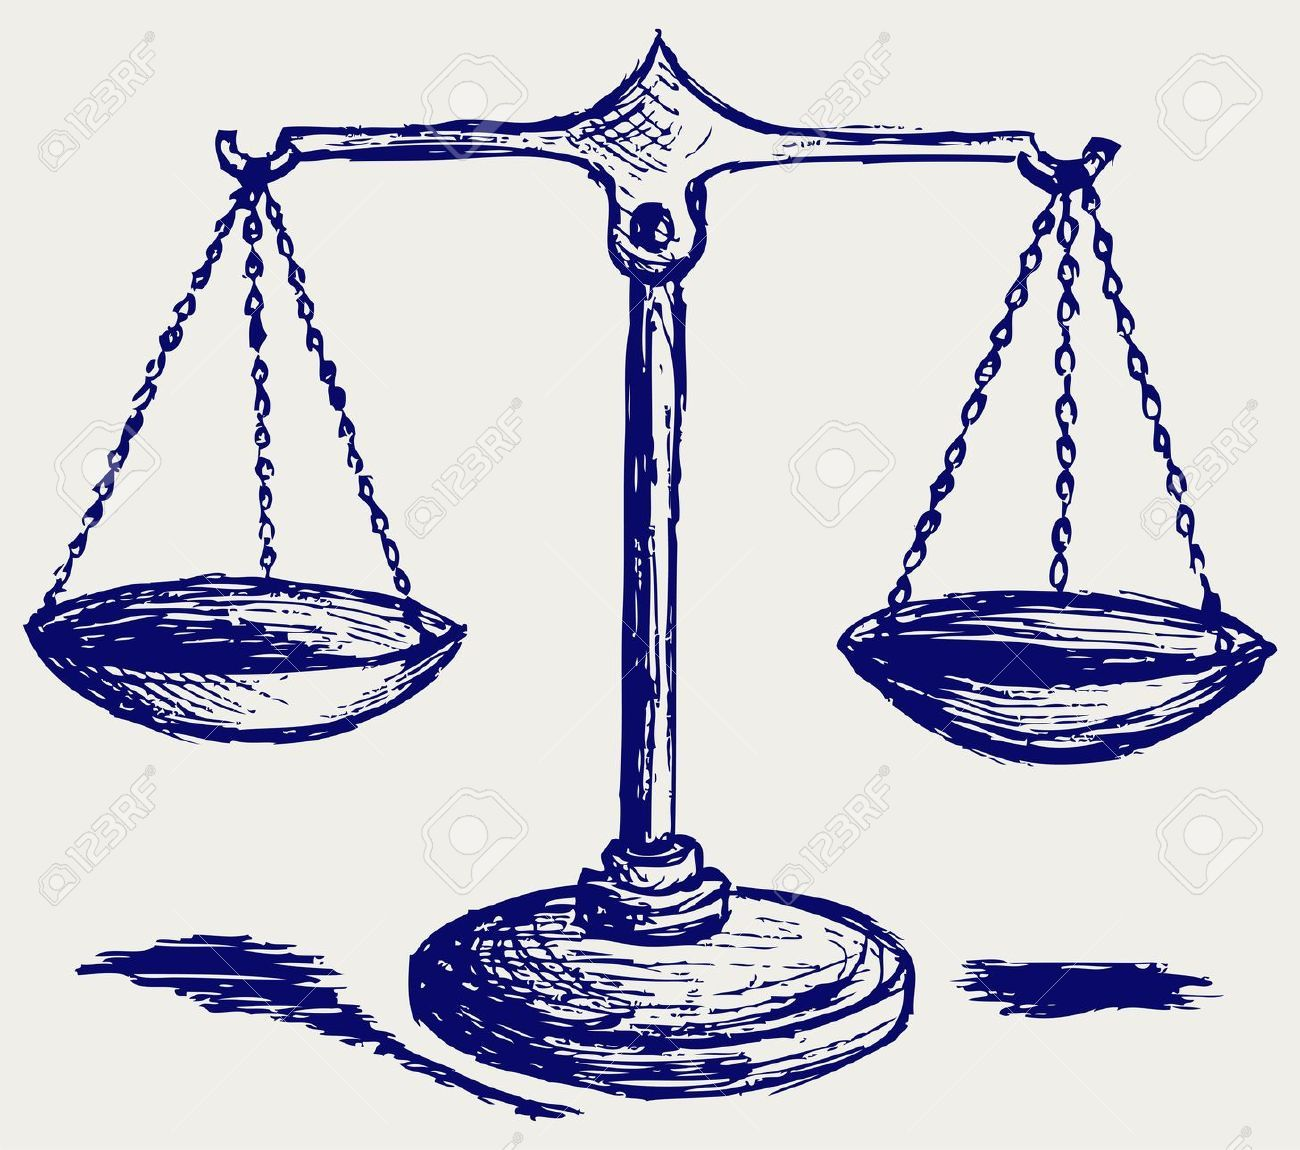 Justice scale drawing google search old maps pinterest justice scale drawing google search biocorpaavc Images